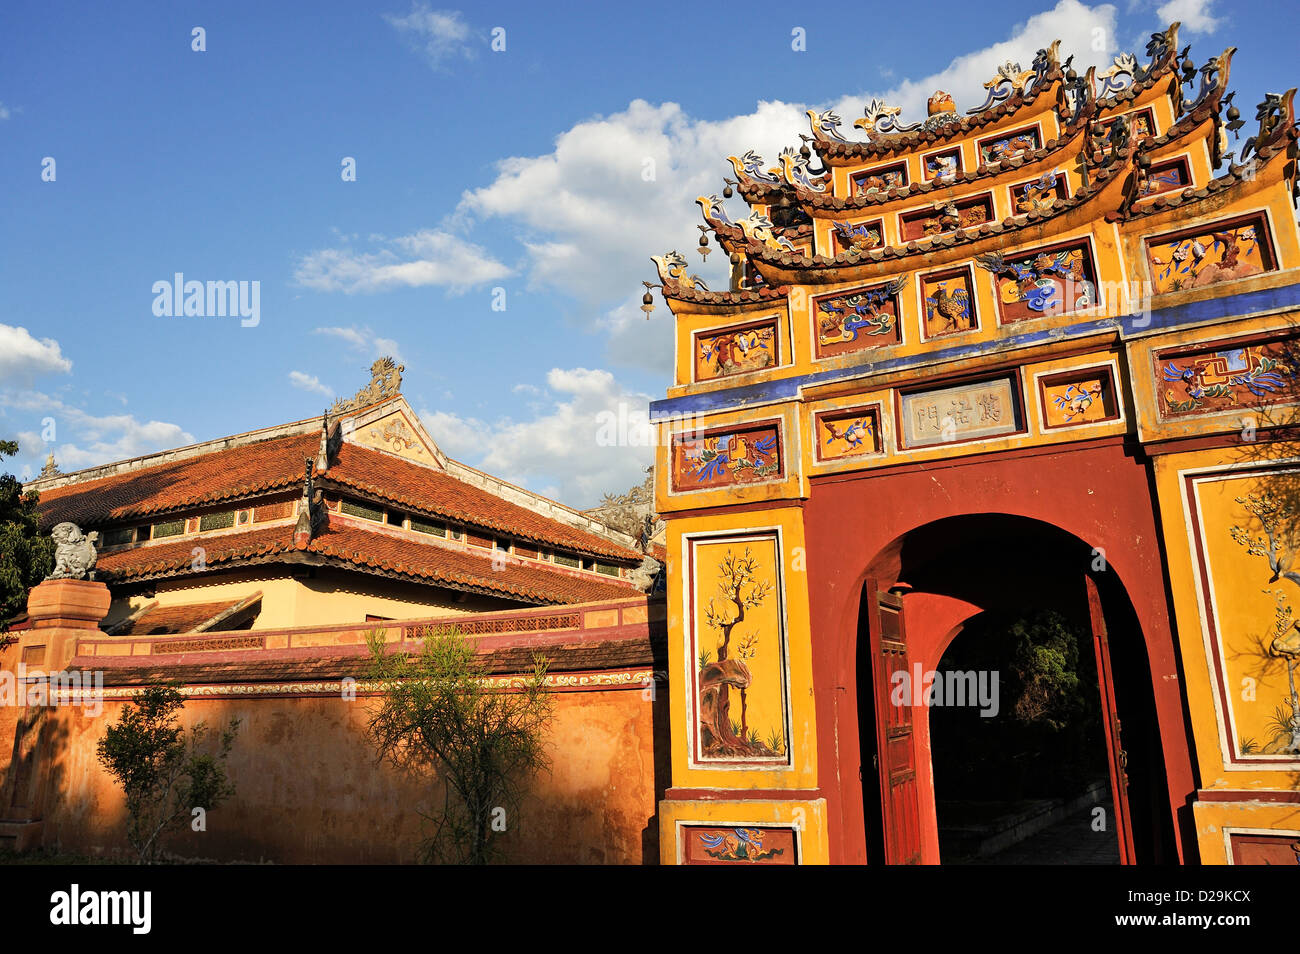 One of the gates at the Royal Citadel, Hue, Vietnam - Stock Image